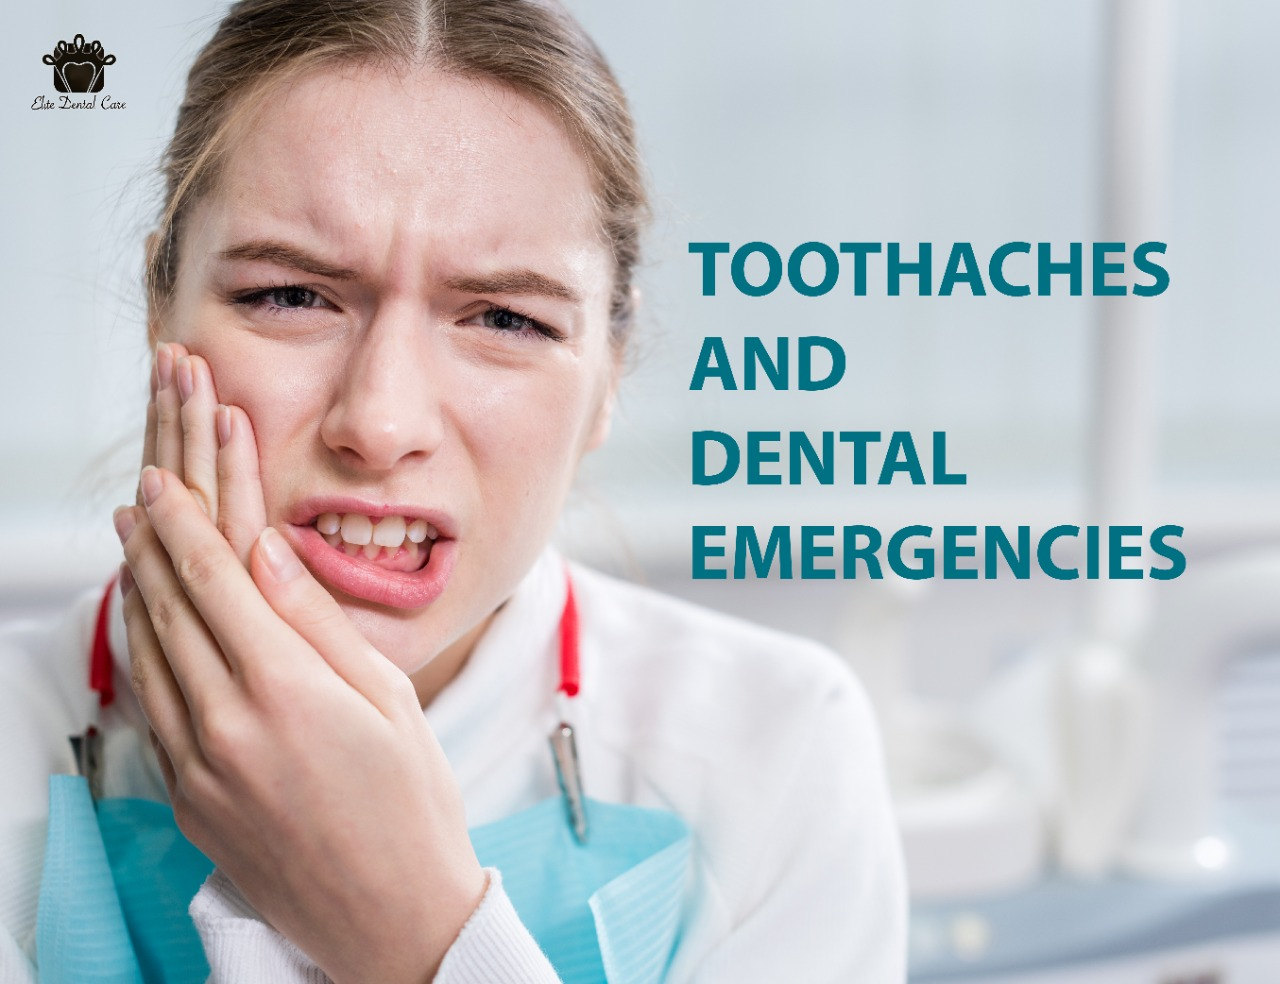 Toothaches and Dental Emergencies